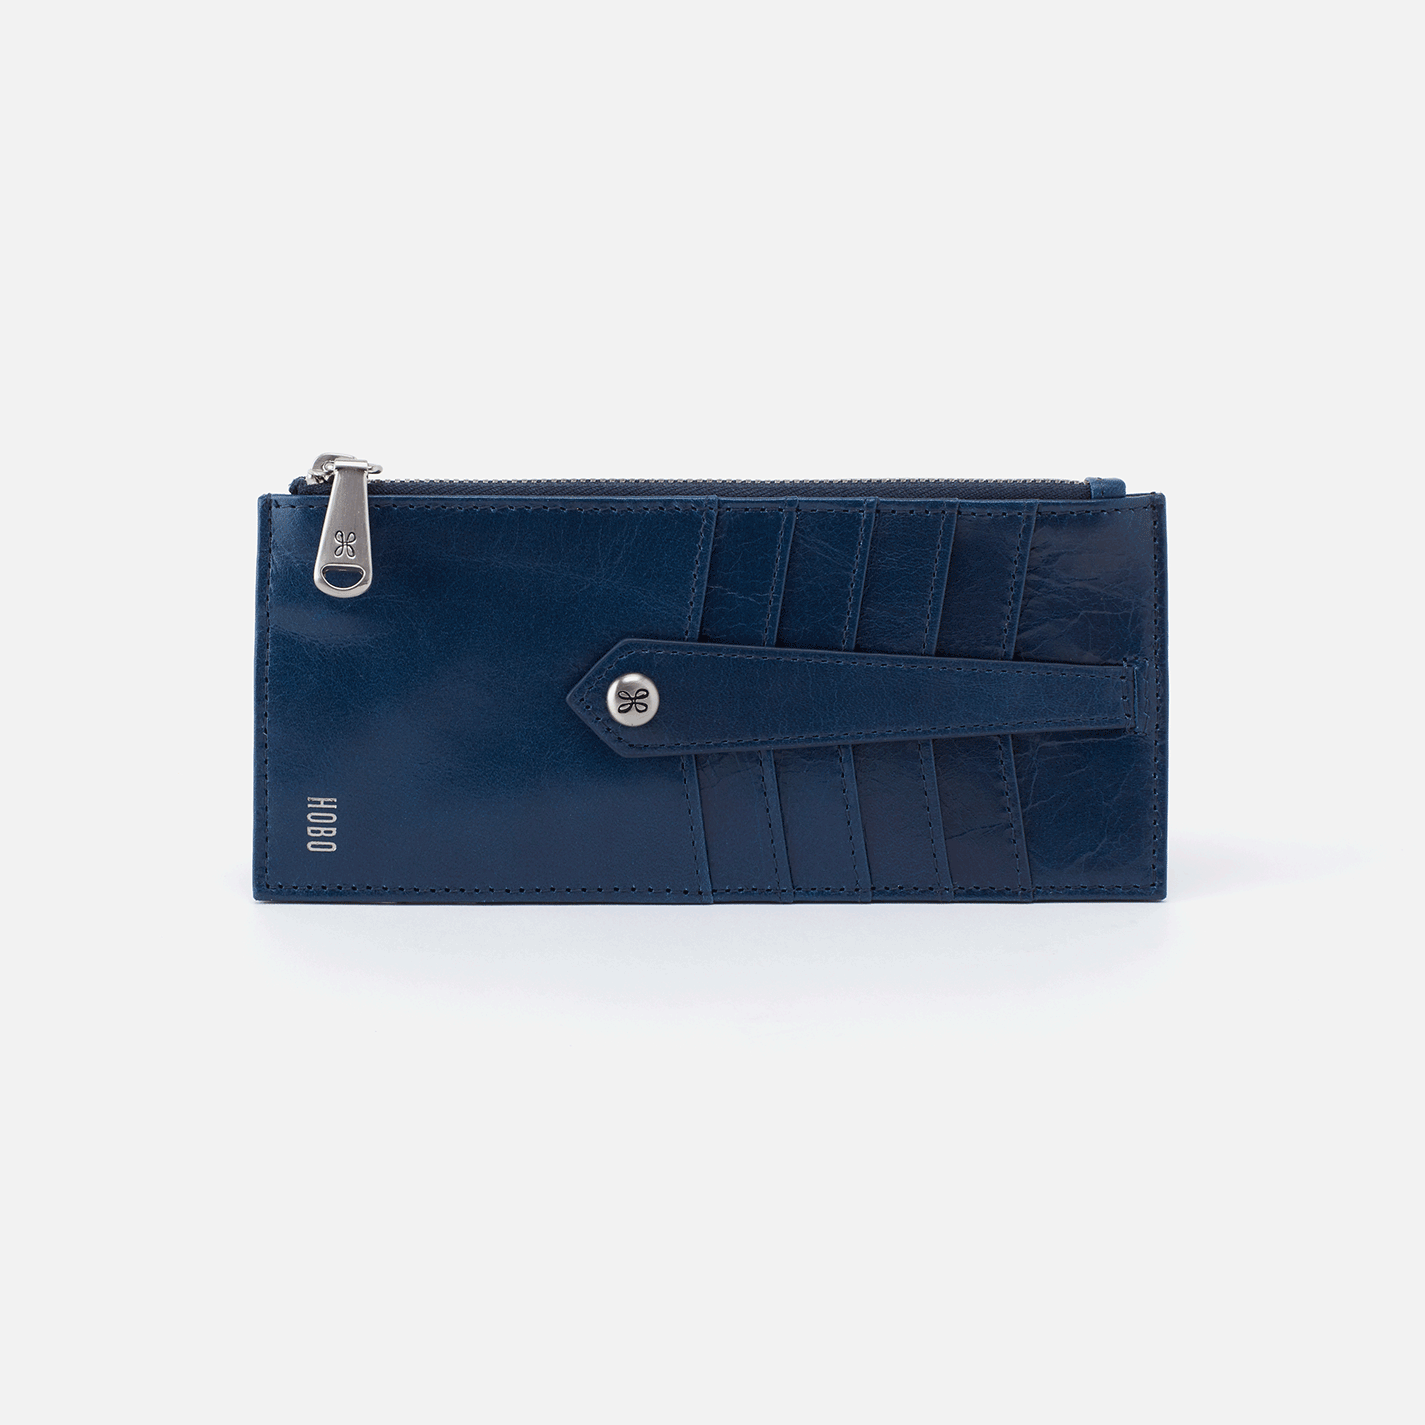 Hobo Linn Credit Card Wallet - Gabrielle's Biloxi